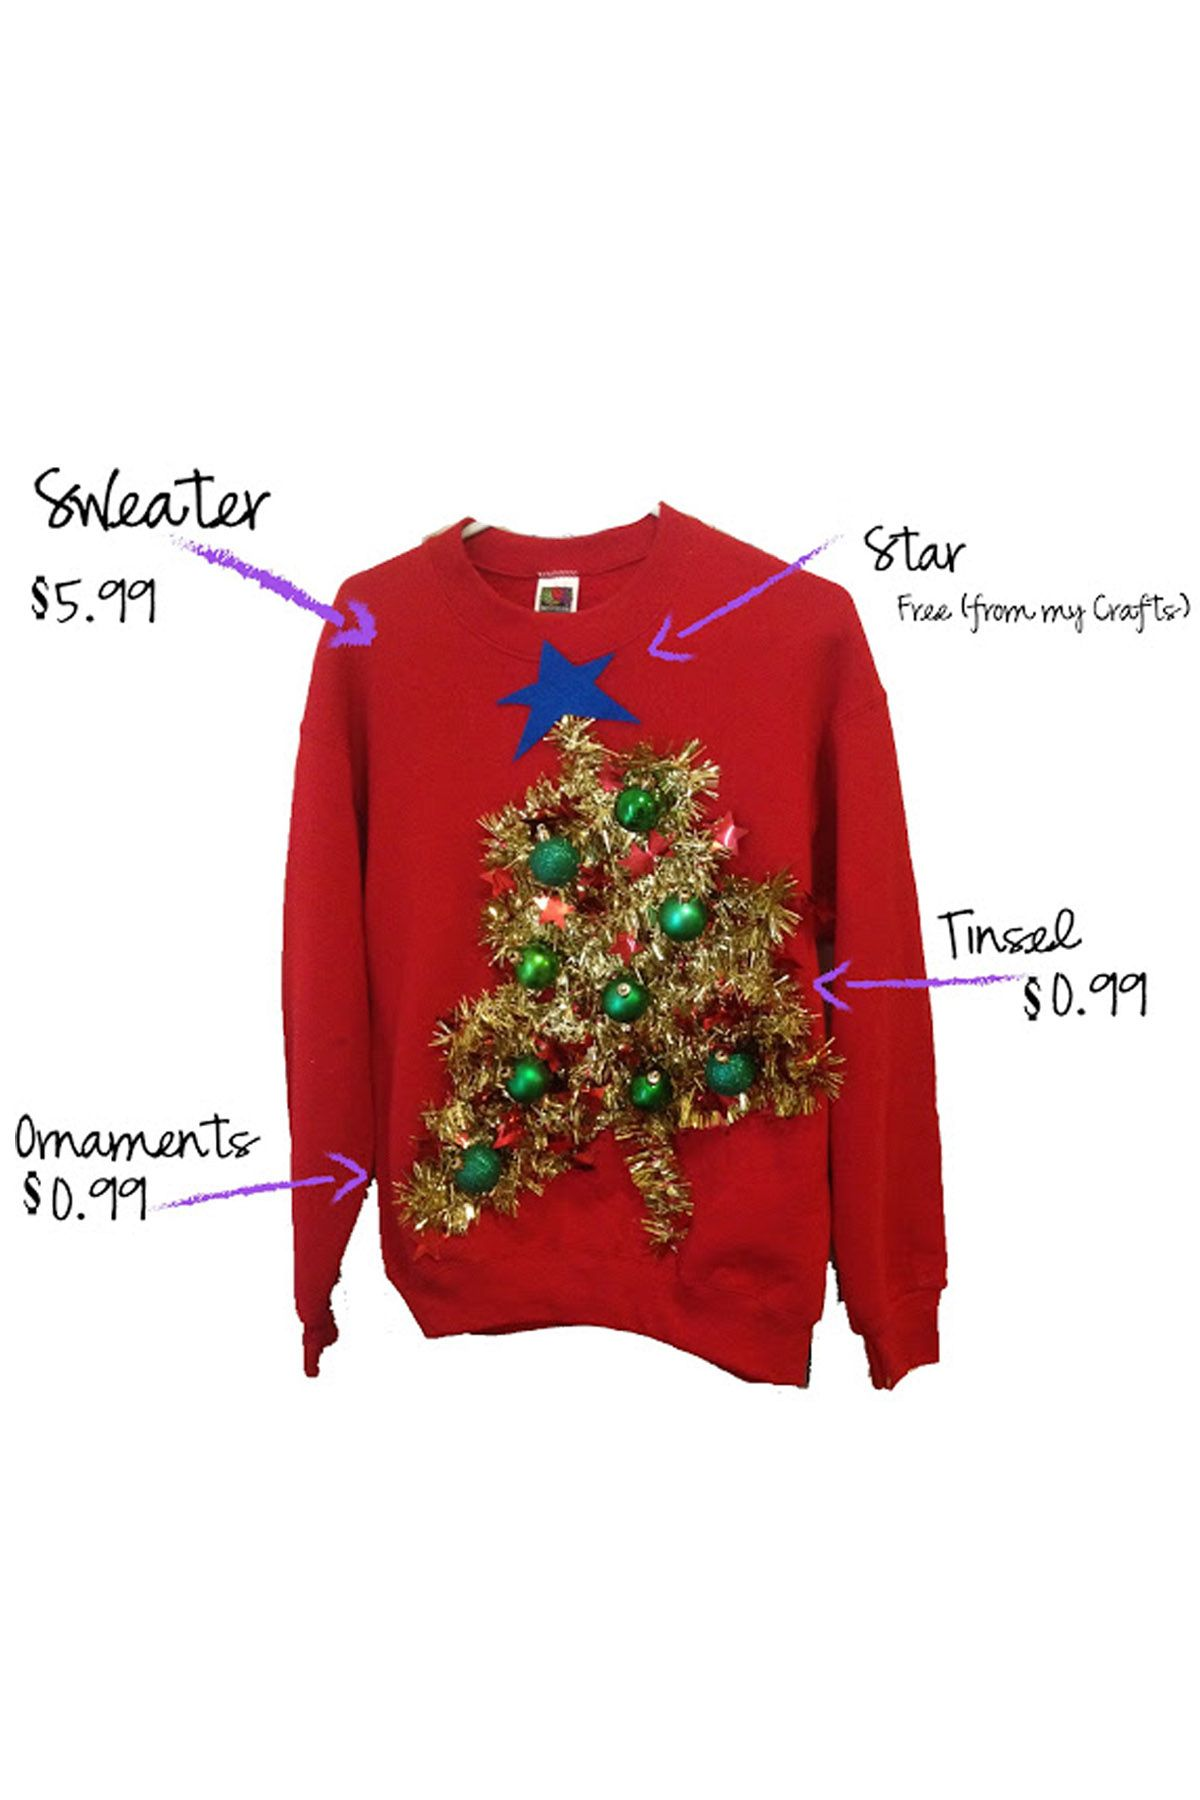 22 Ugly Christmas Sweater Ideas to Buy and DIY - Tacky Christmas Sweaters  for Women 68411093a